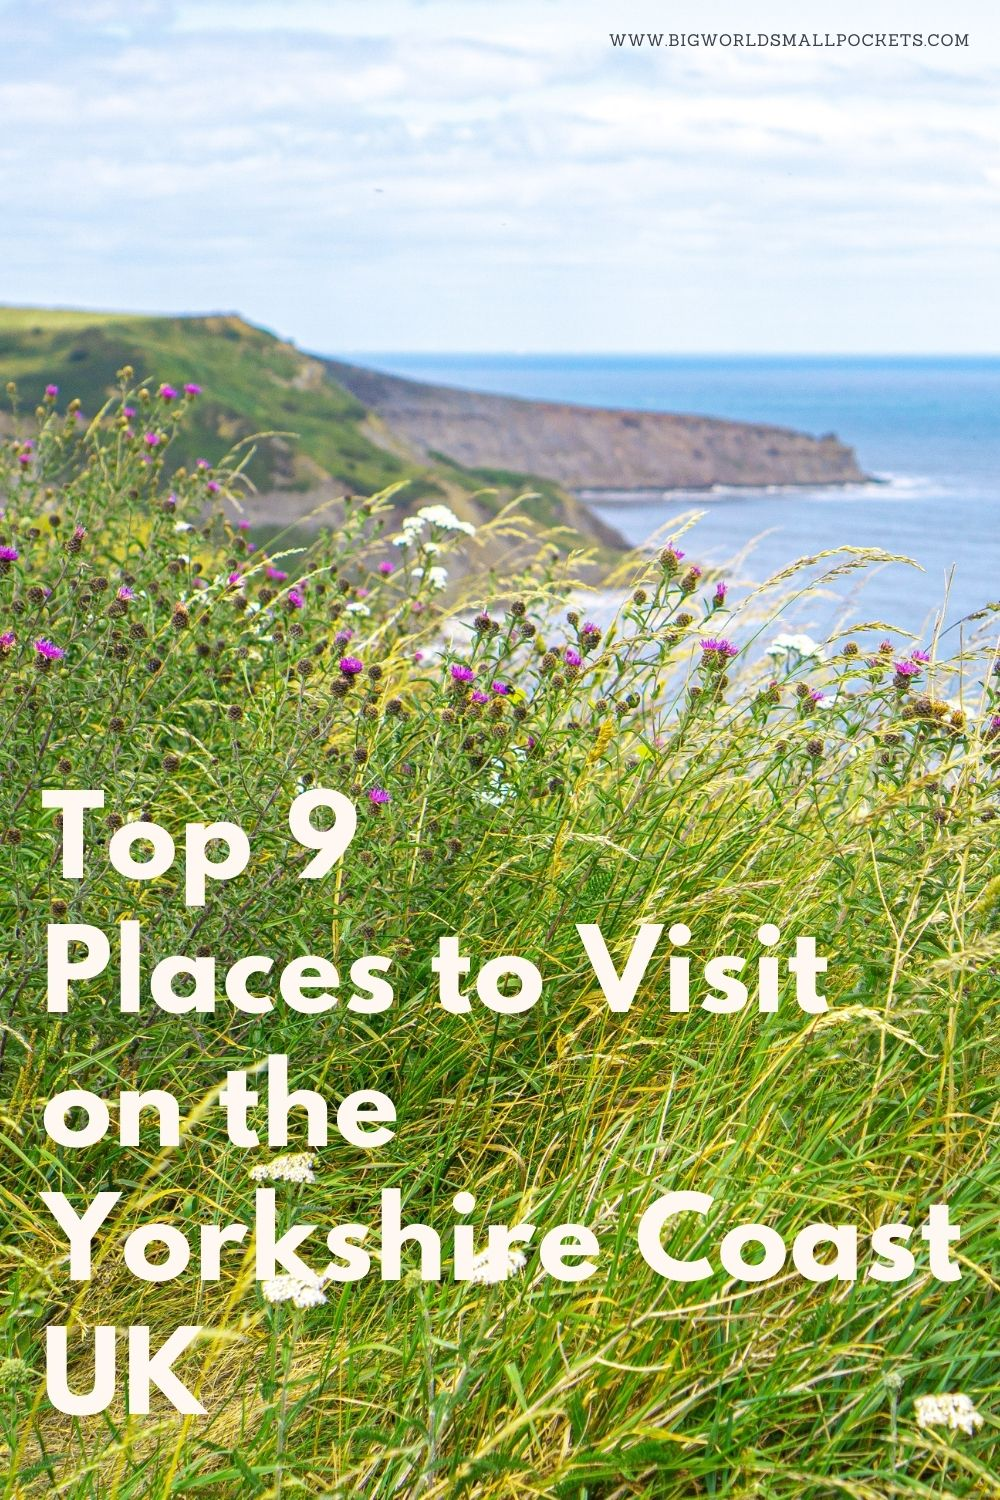 Top 9 Places to Visit on the Yorkshire Coast